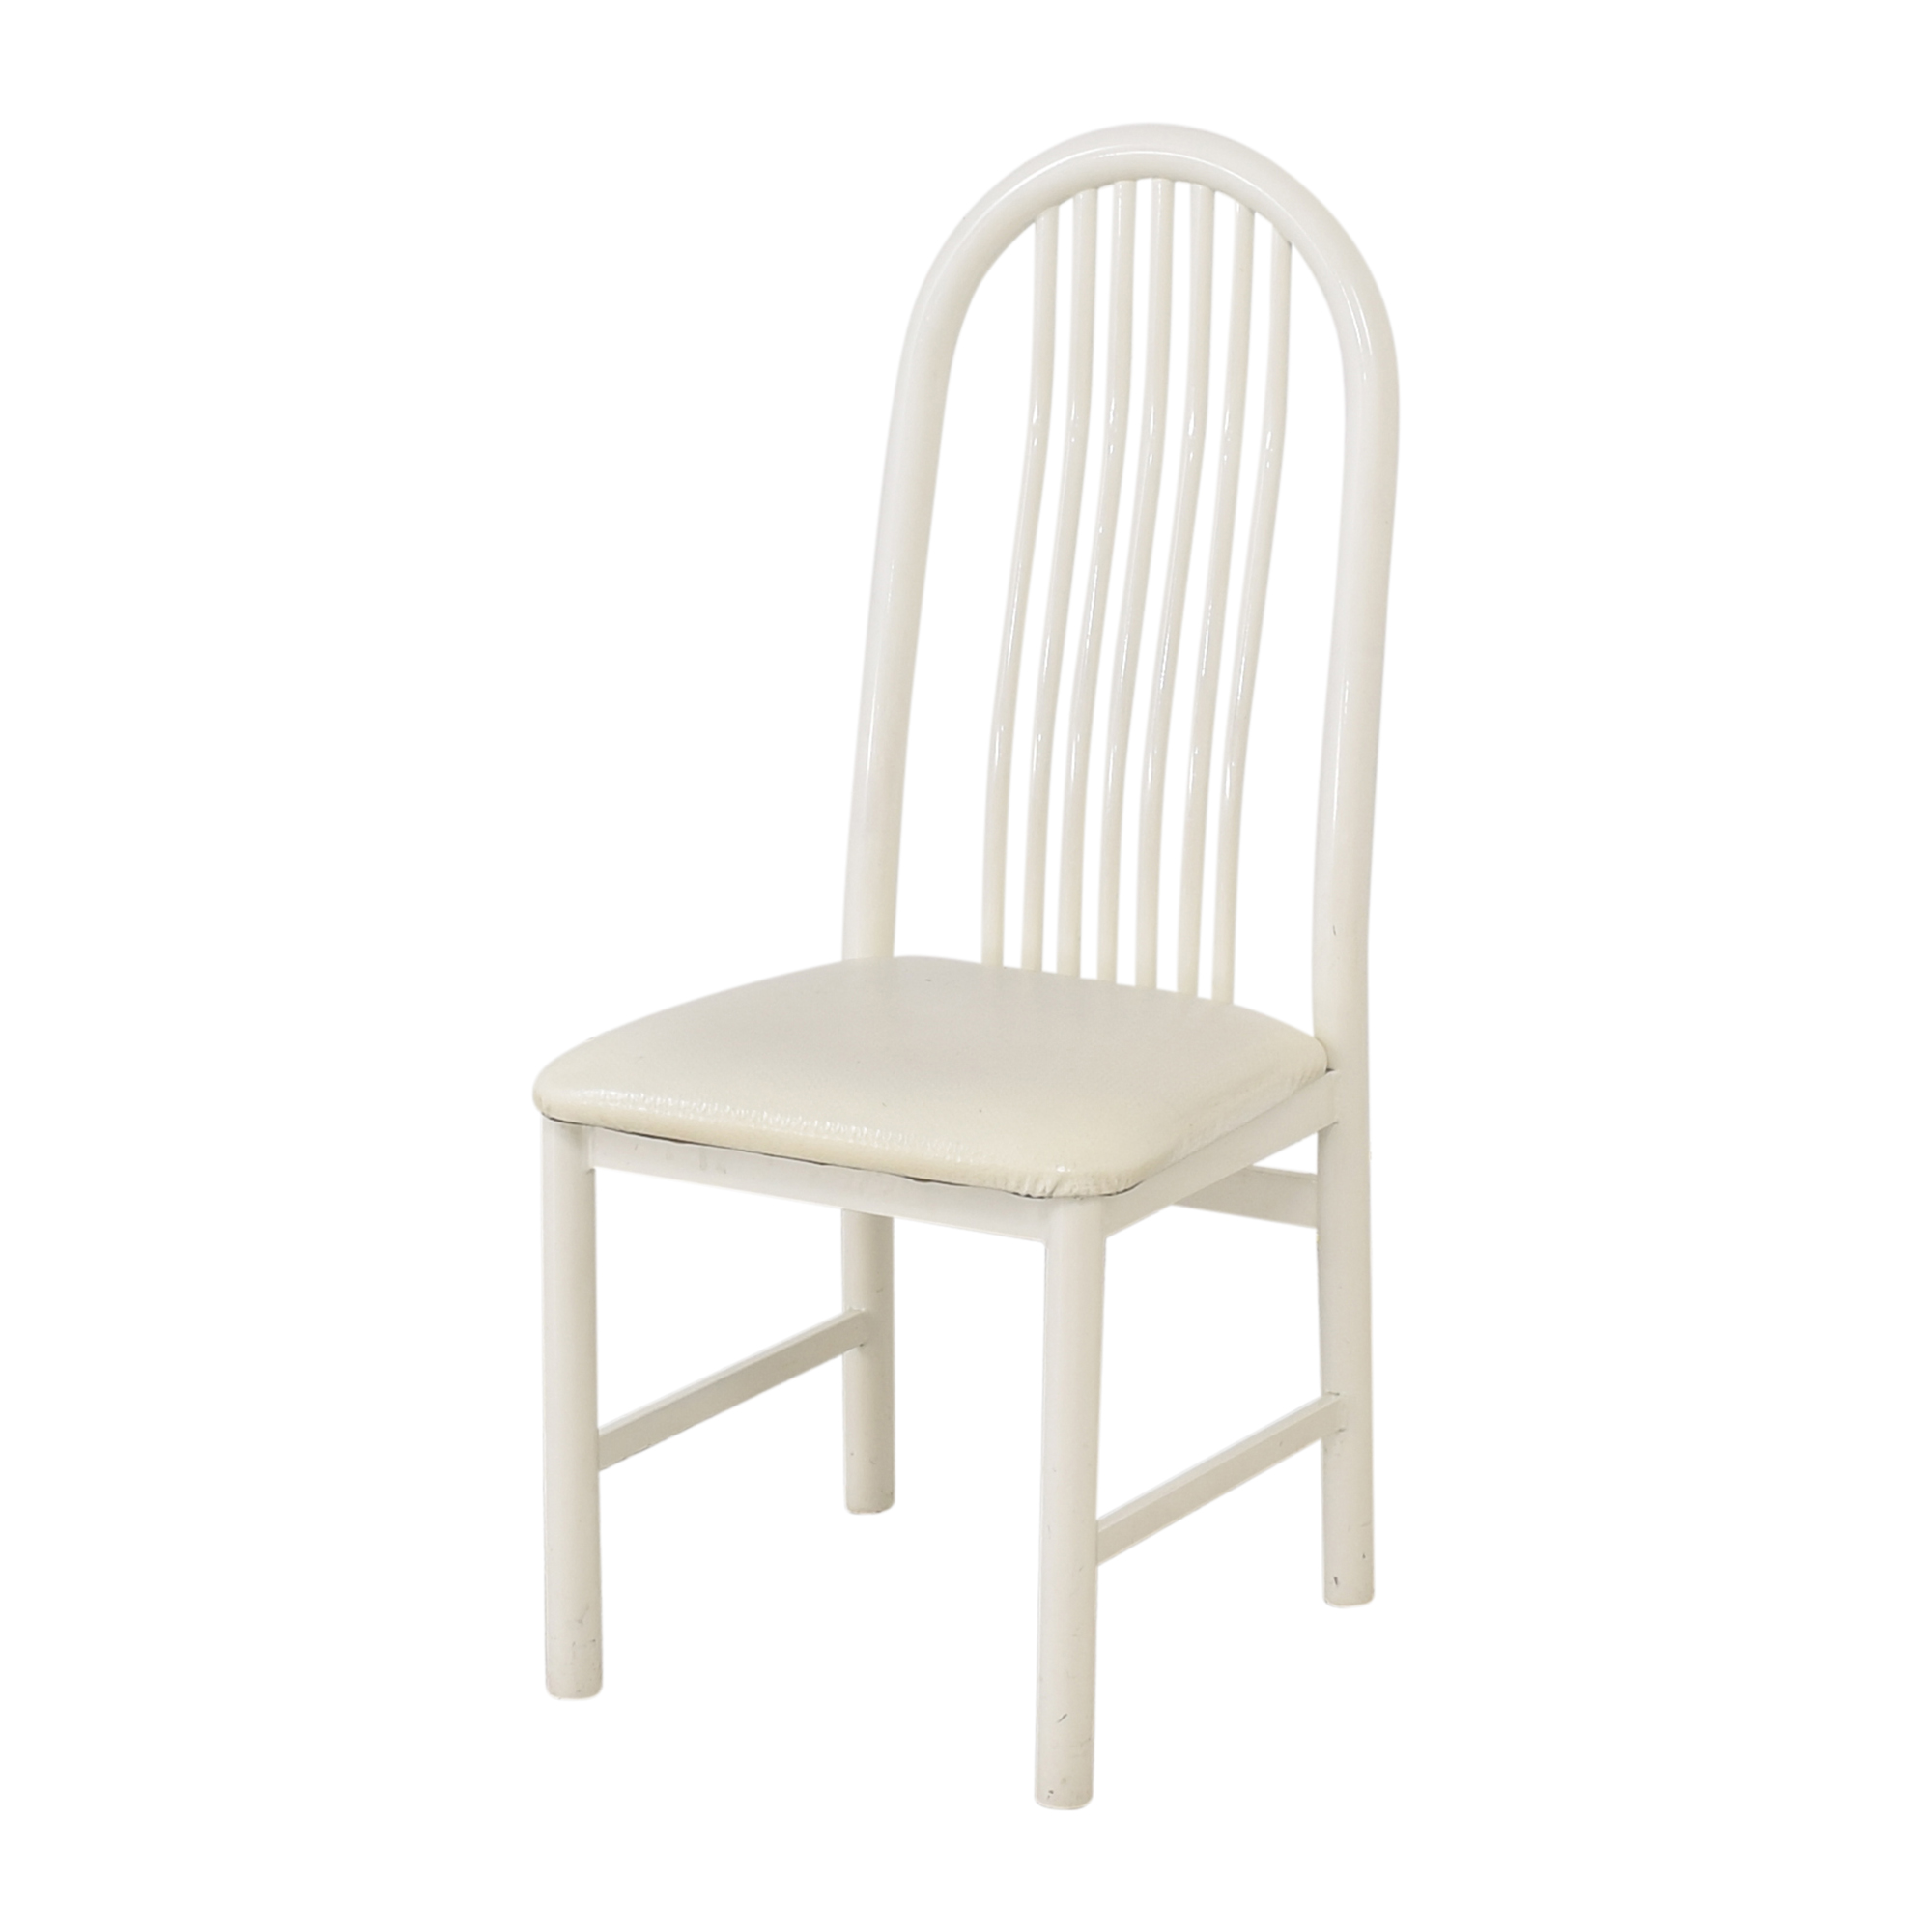 82 Off Arch Back Dining Chairs Chairs